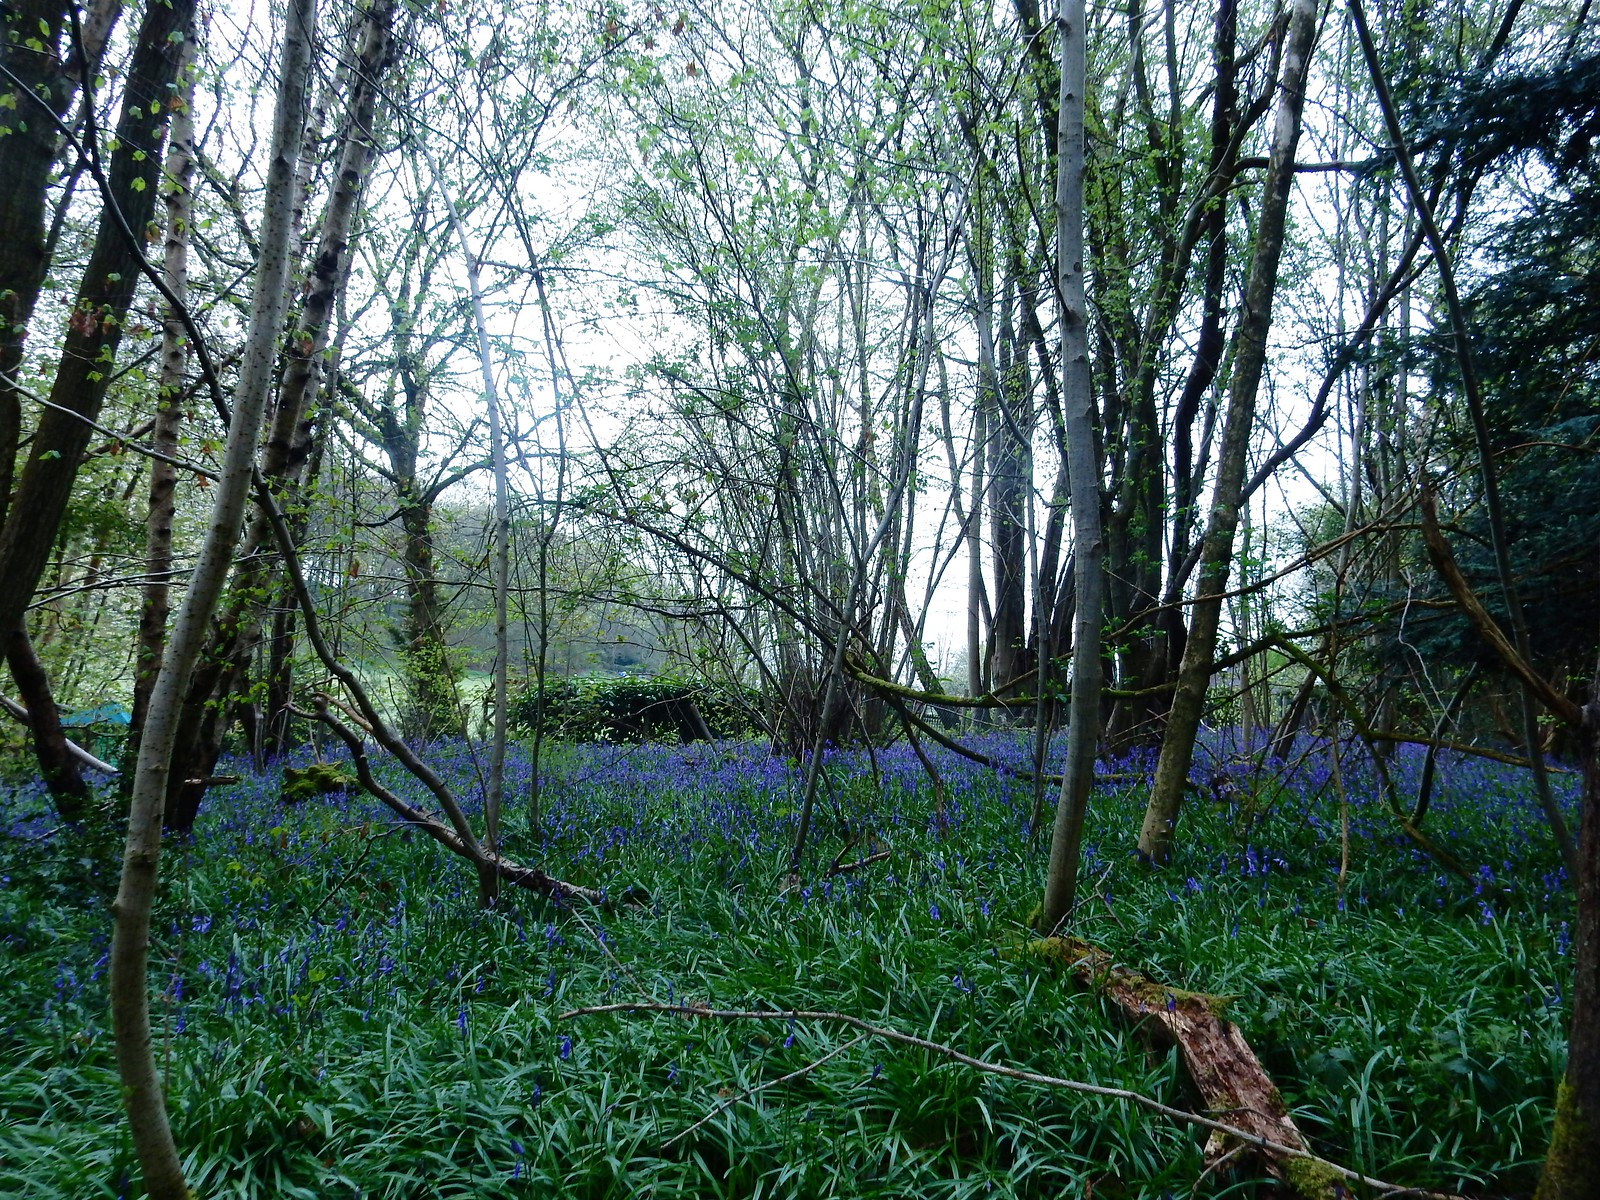 Bluebells first woods Hurst Green to Chiddingstone Causeway